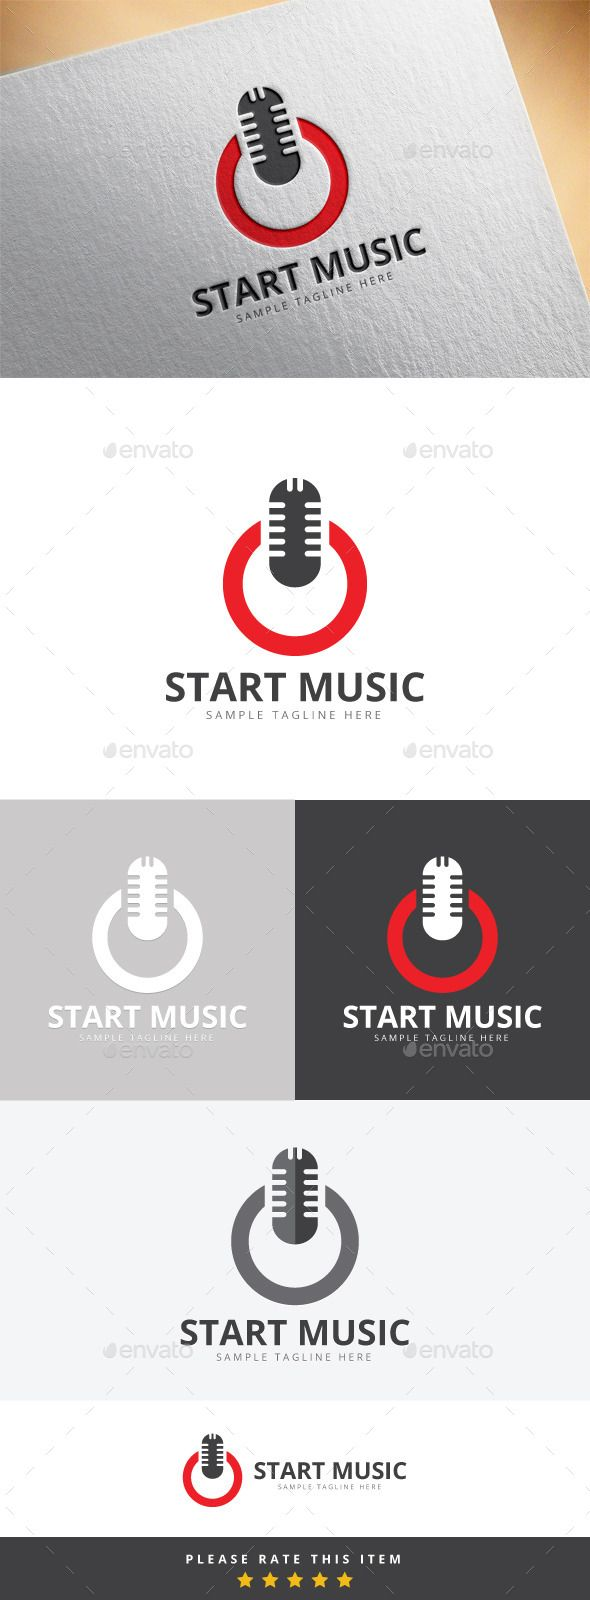 Power Music Logo — Vector EPS #corporate #modern • Available here → https://graphicriver.net/item/power-music-logo/10169949?ref=pxcr